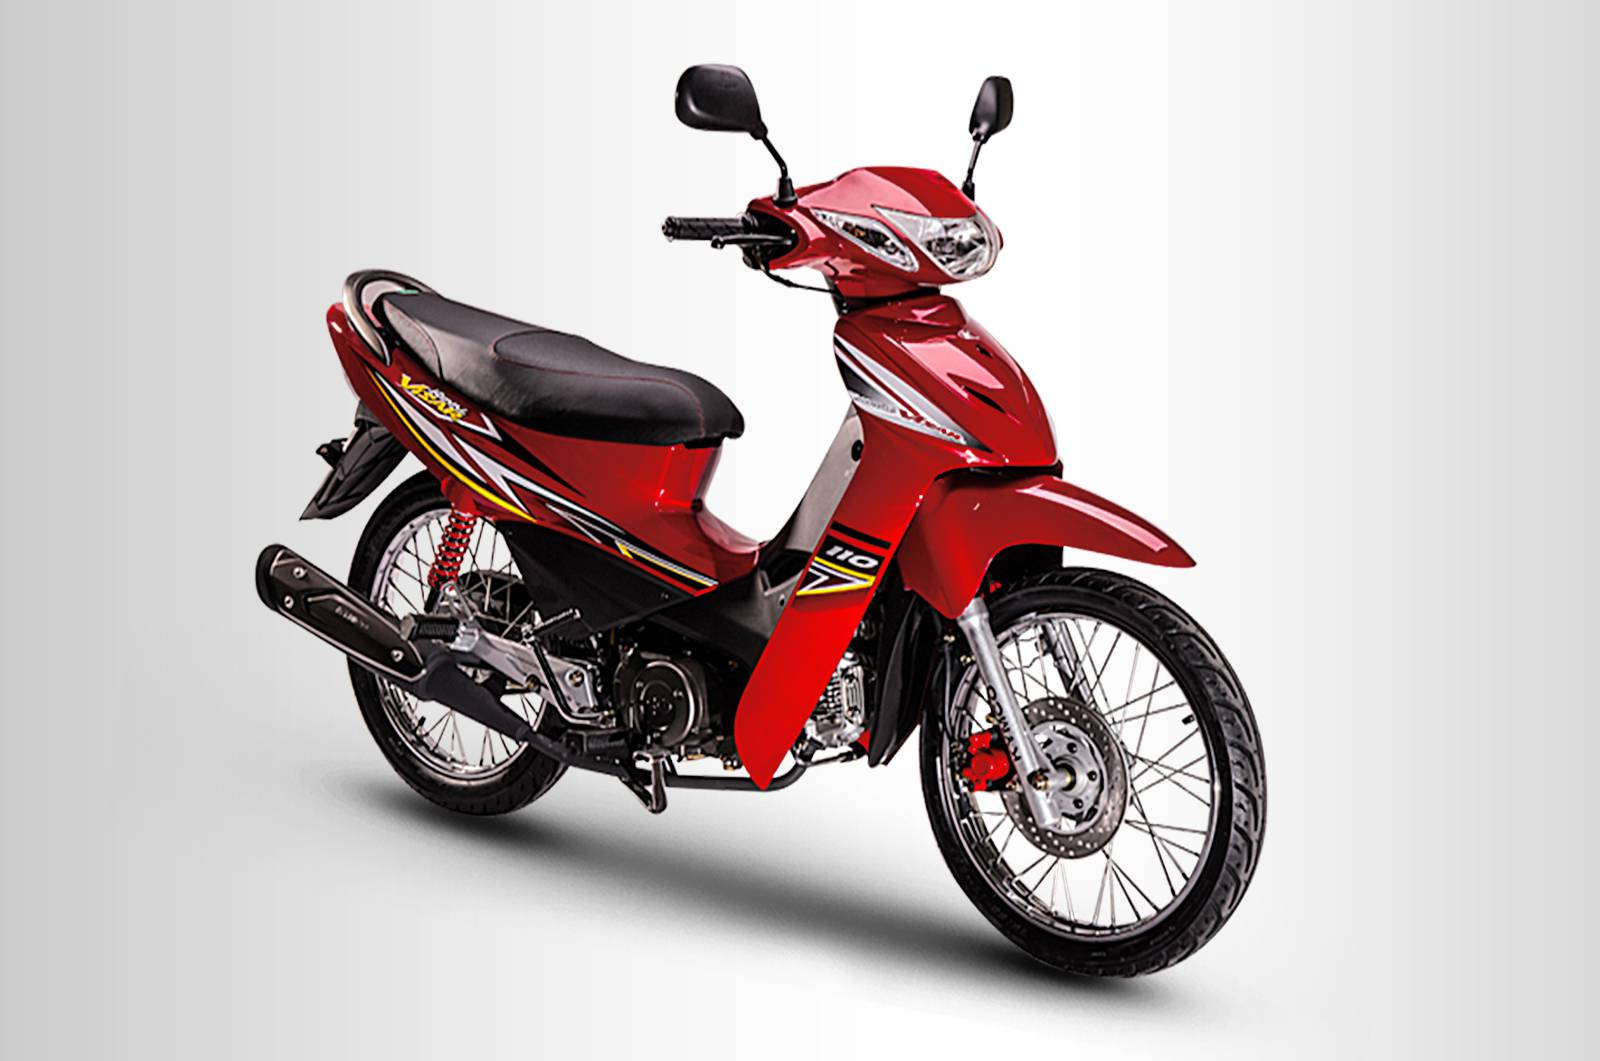 Kymco visa r 110 royal spoke red